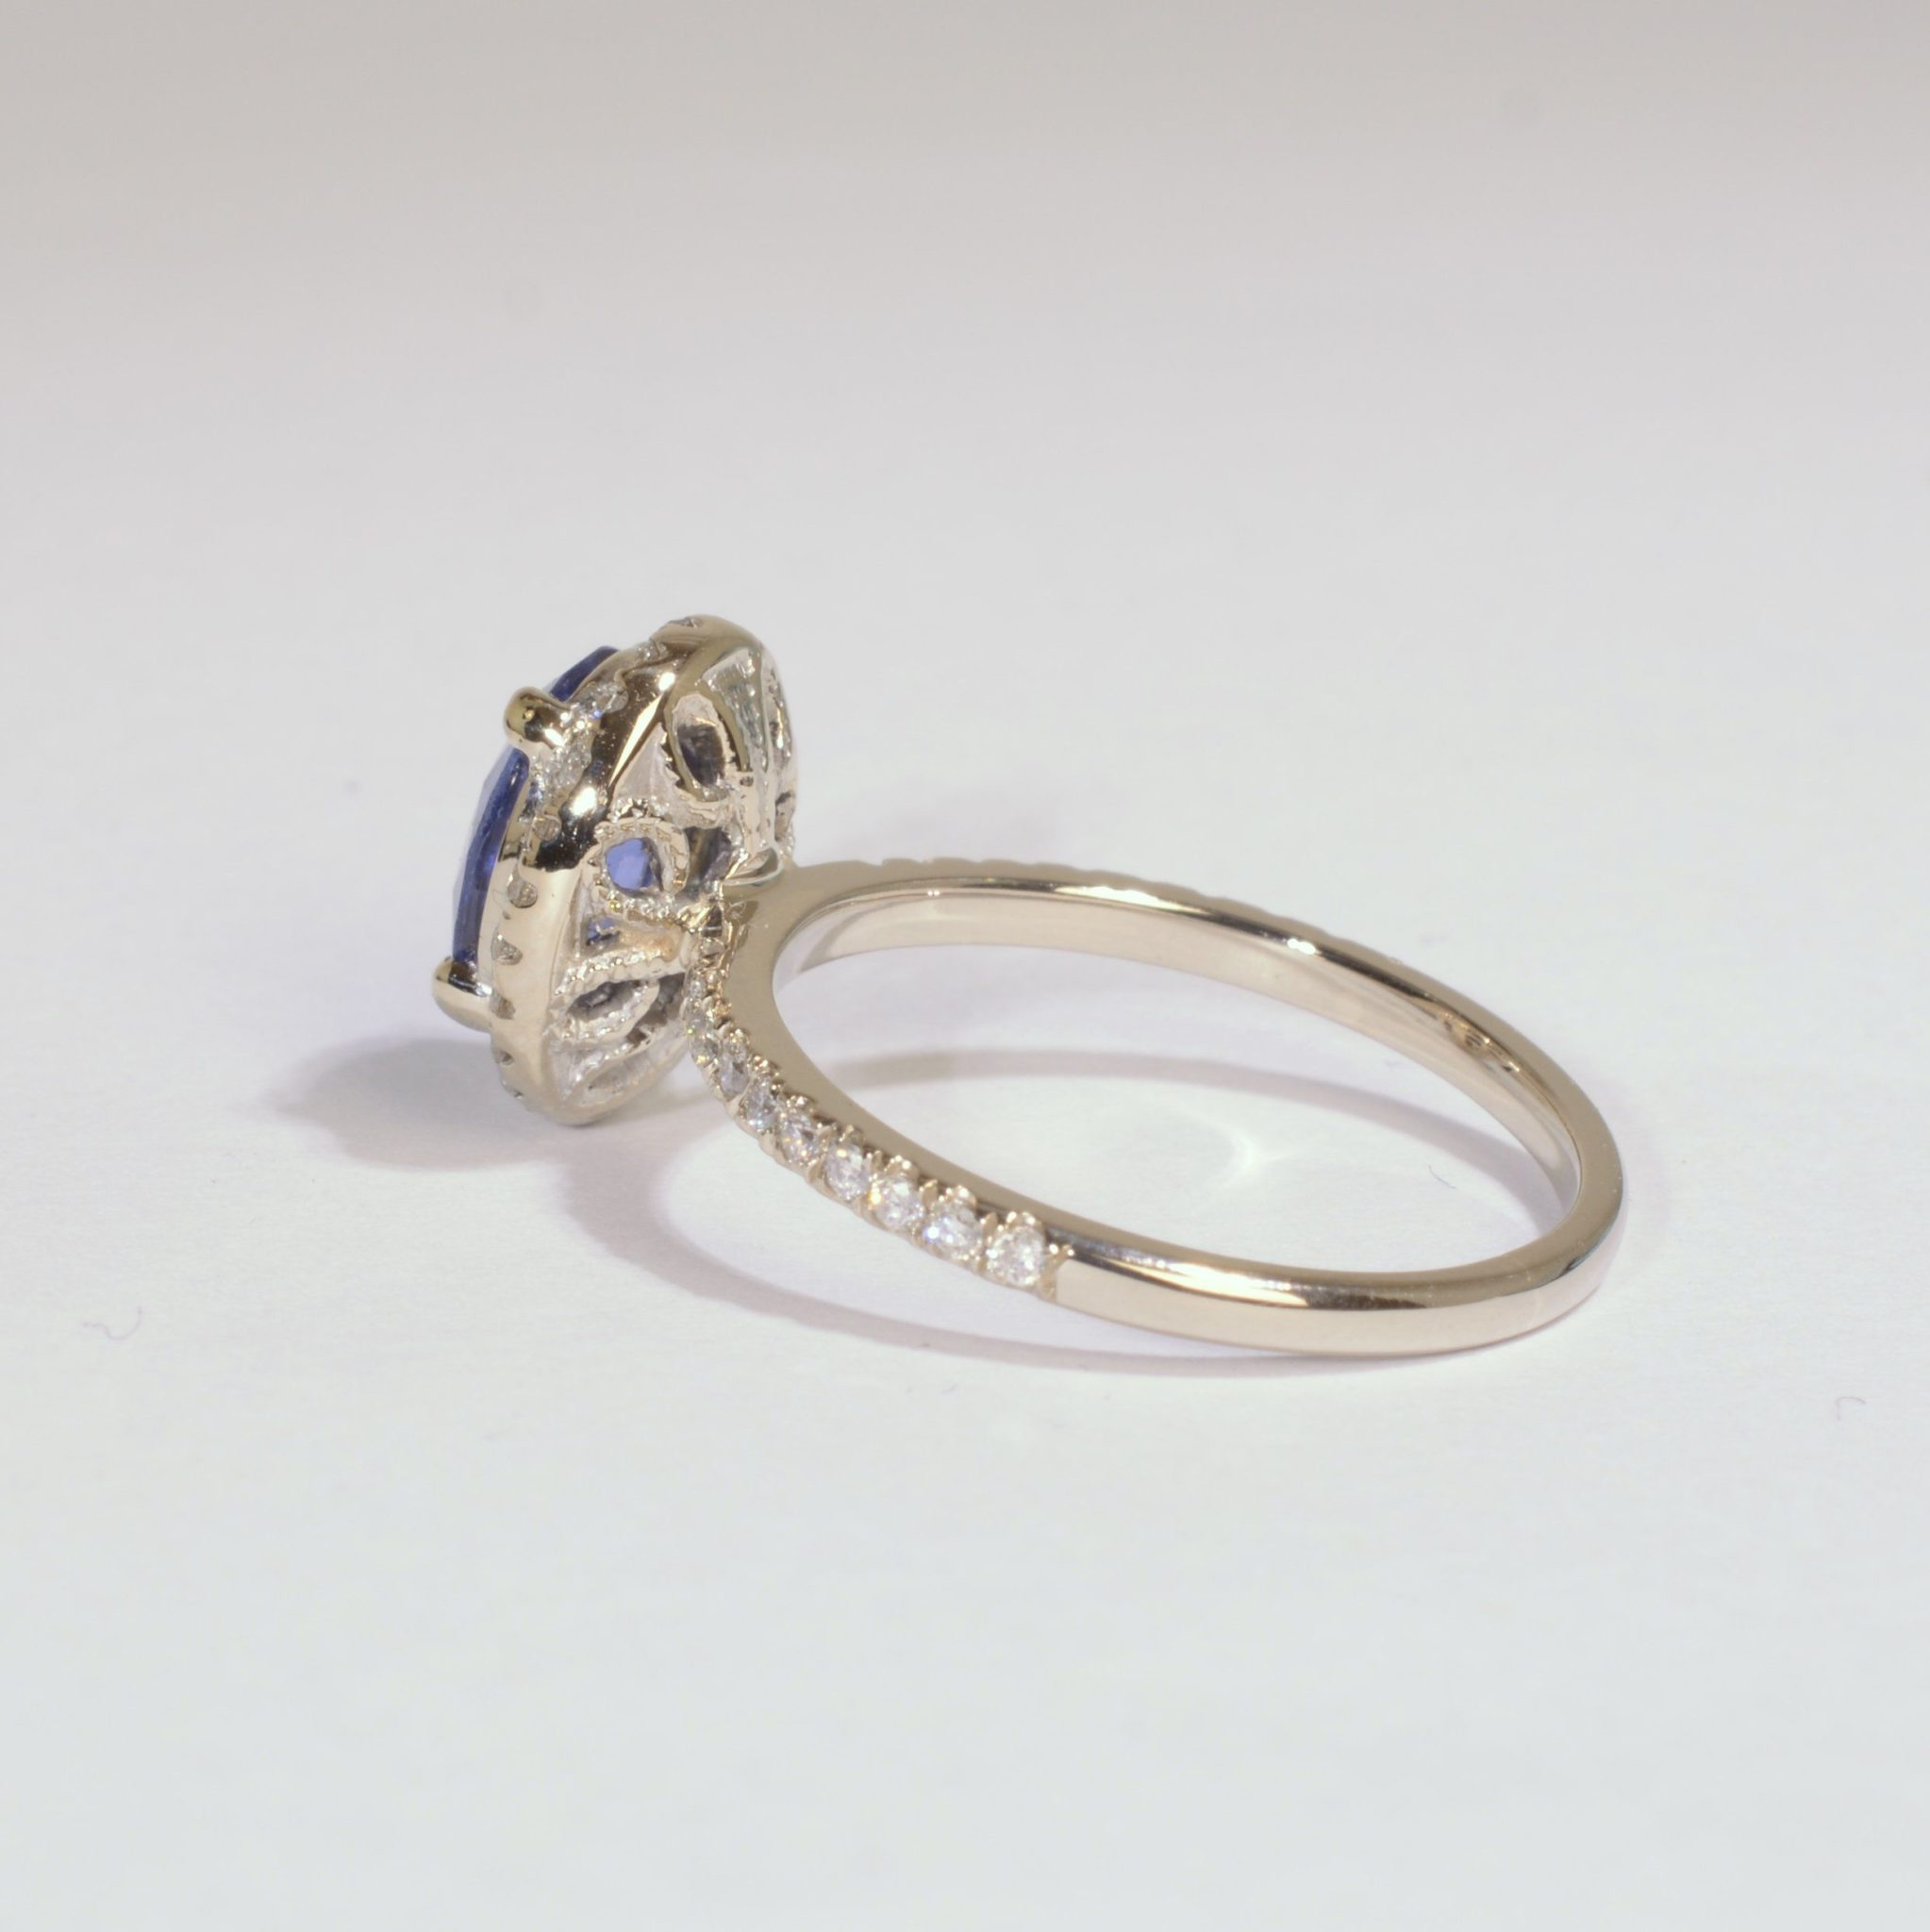 jewellers engagement blue sapphire pear shape dublin wedding gold products rings campbell white diamond ring